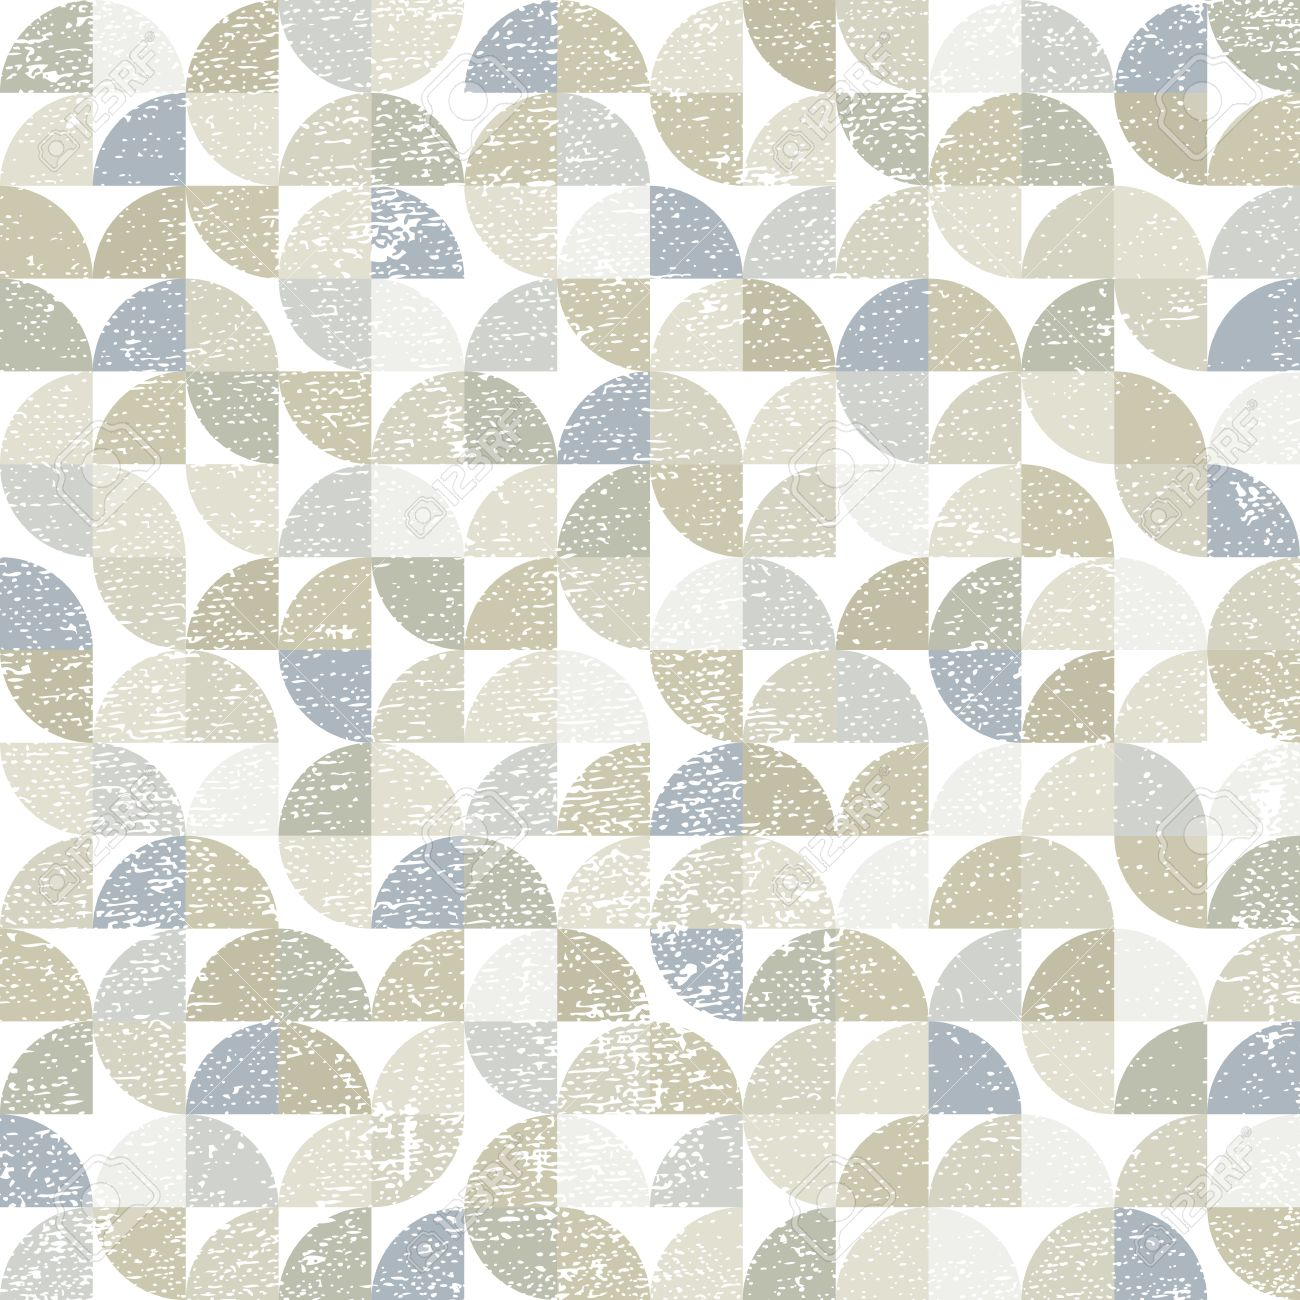 carpet tile installation patterns. Vector - Geometric Neutral Textile Abstract Seamless Pattern, Contemporary Carpet Tiles. Tile Installation Patterns N